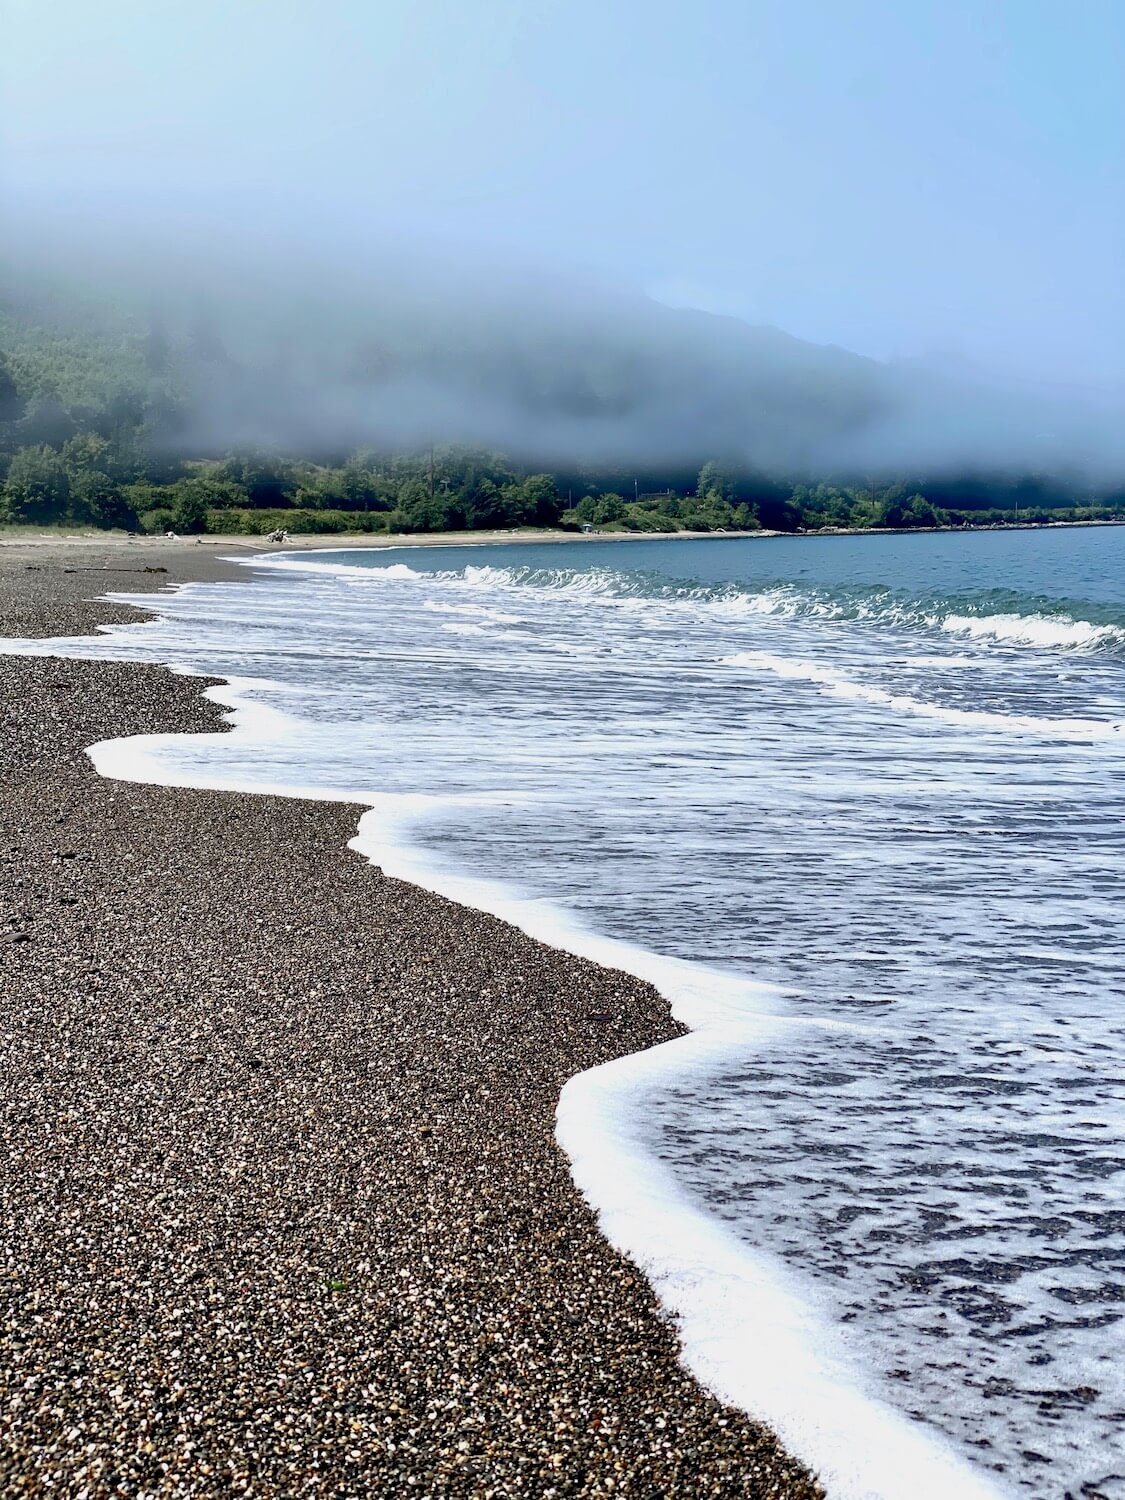 Coastal Olympic Peninsula scene with a pebble beach and soapy, white foam of the surf slathering the beach with a wavy line. In the distance the mist still hovers over the hill of trees, only revealing a faint line.